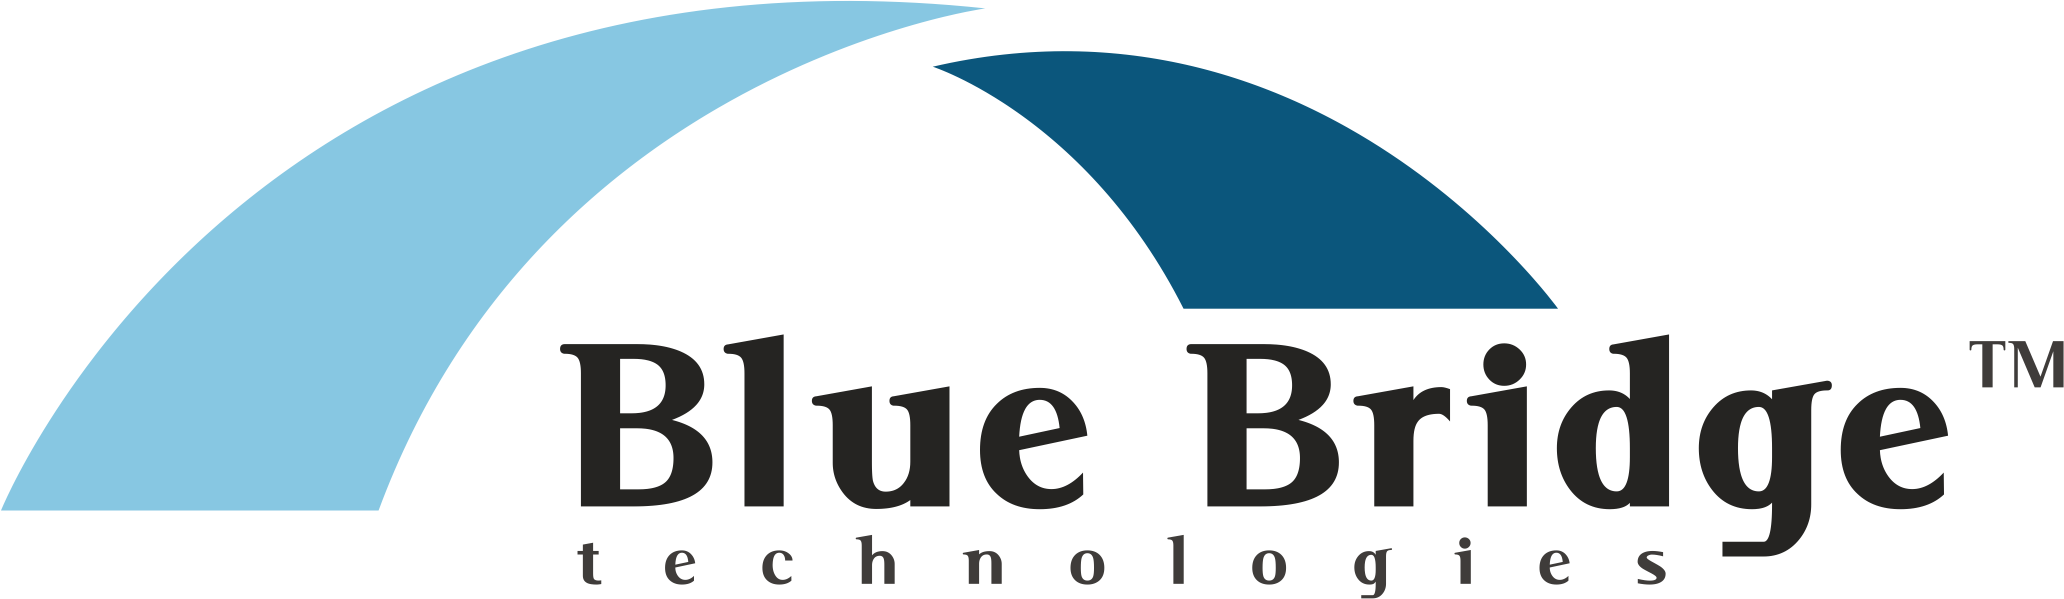 DEAC Blue Bridge Technologies logo